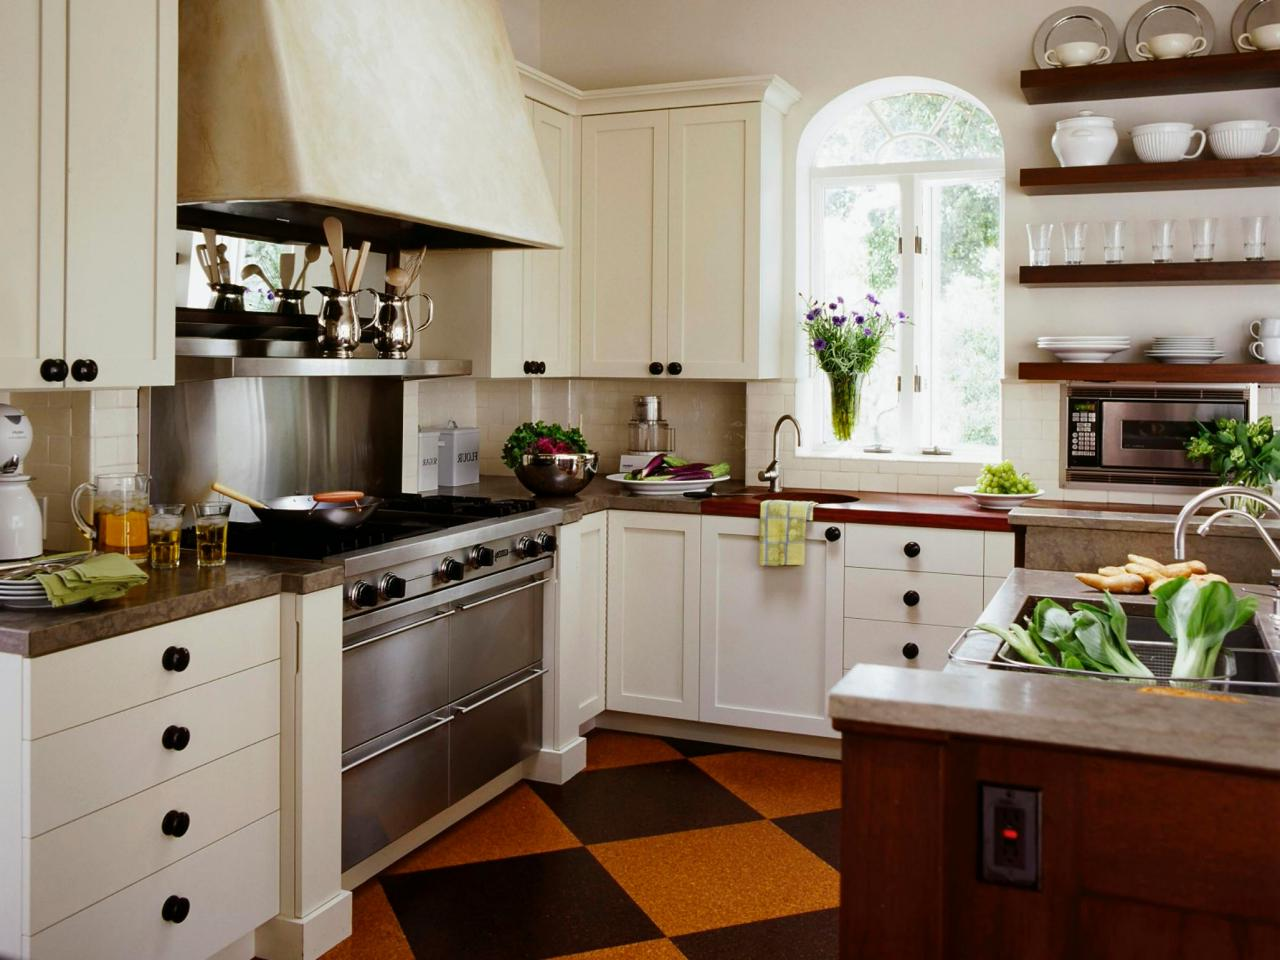 Older Home Kitchen Remodeling Ideas | Roy Home Design on Kitchen Remodeling Ideas  id=25530